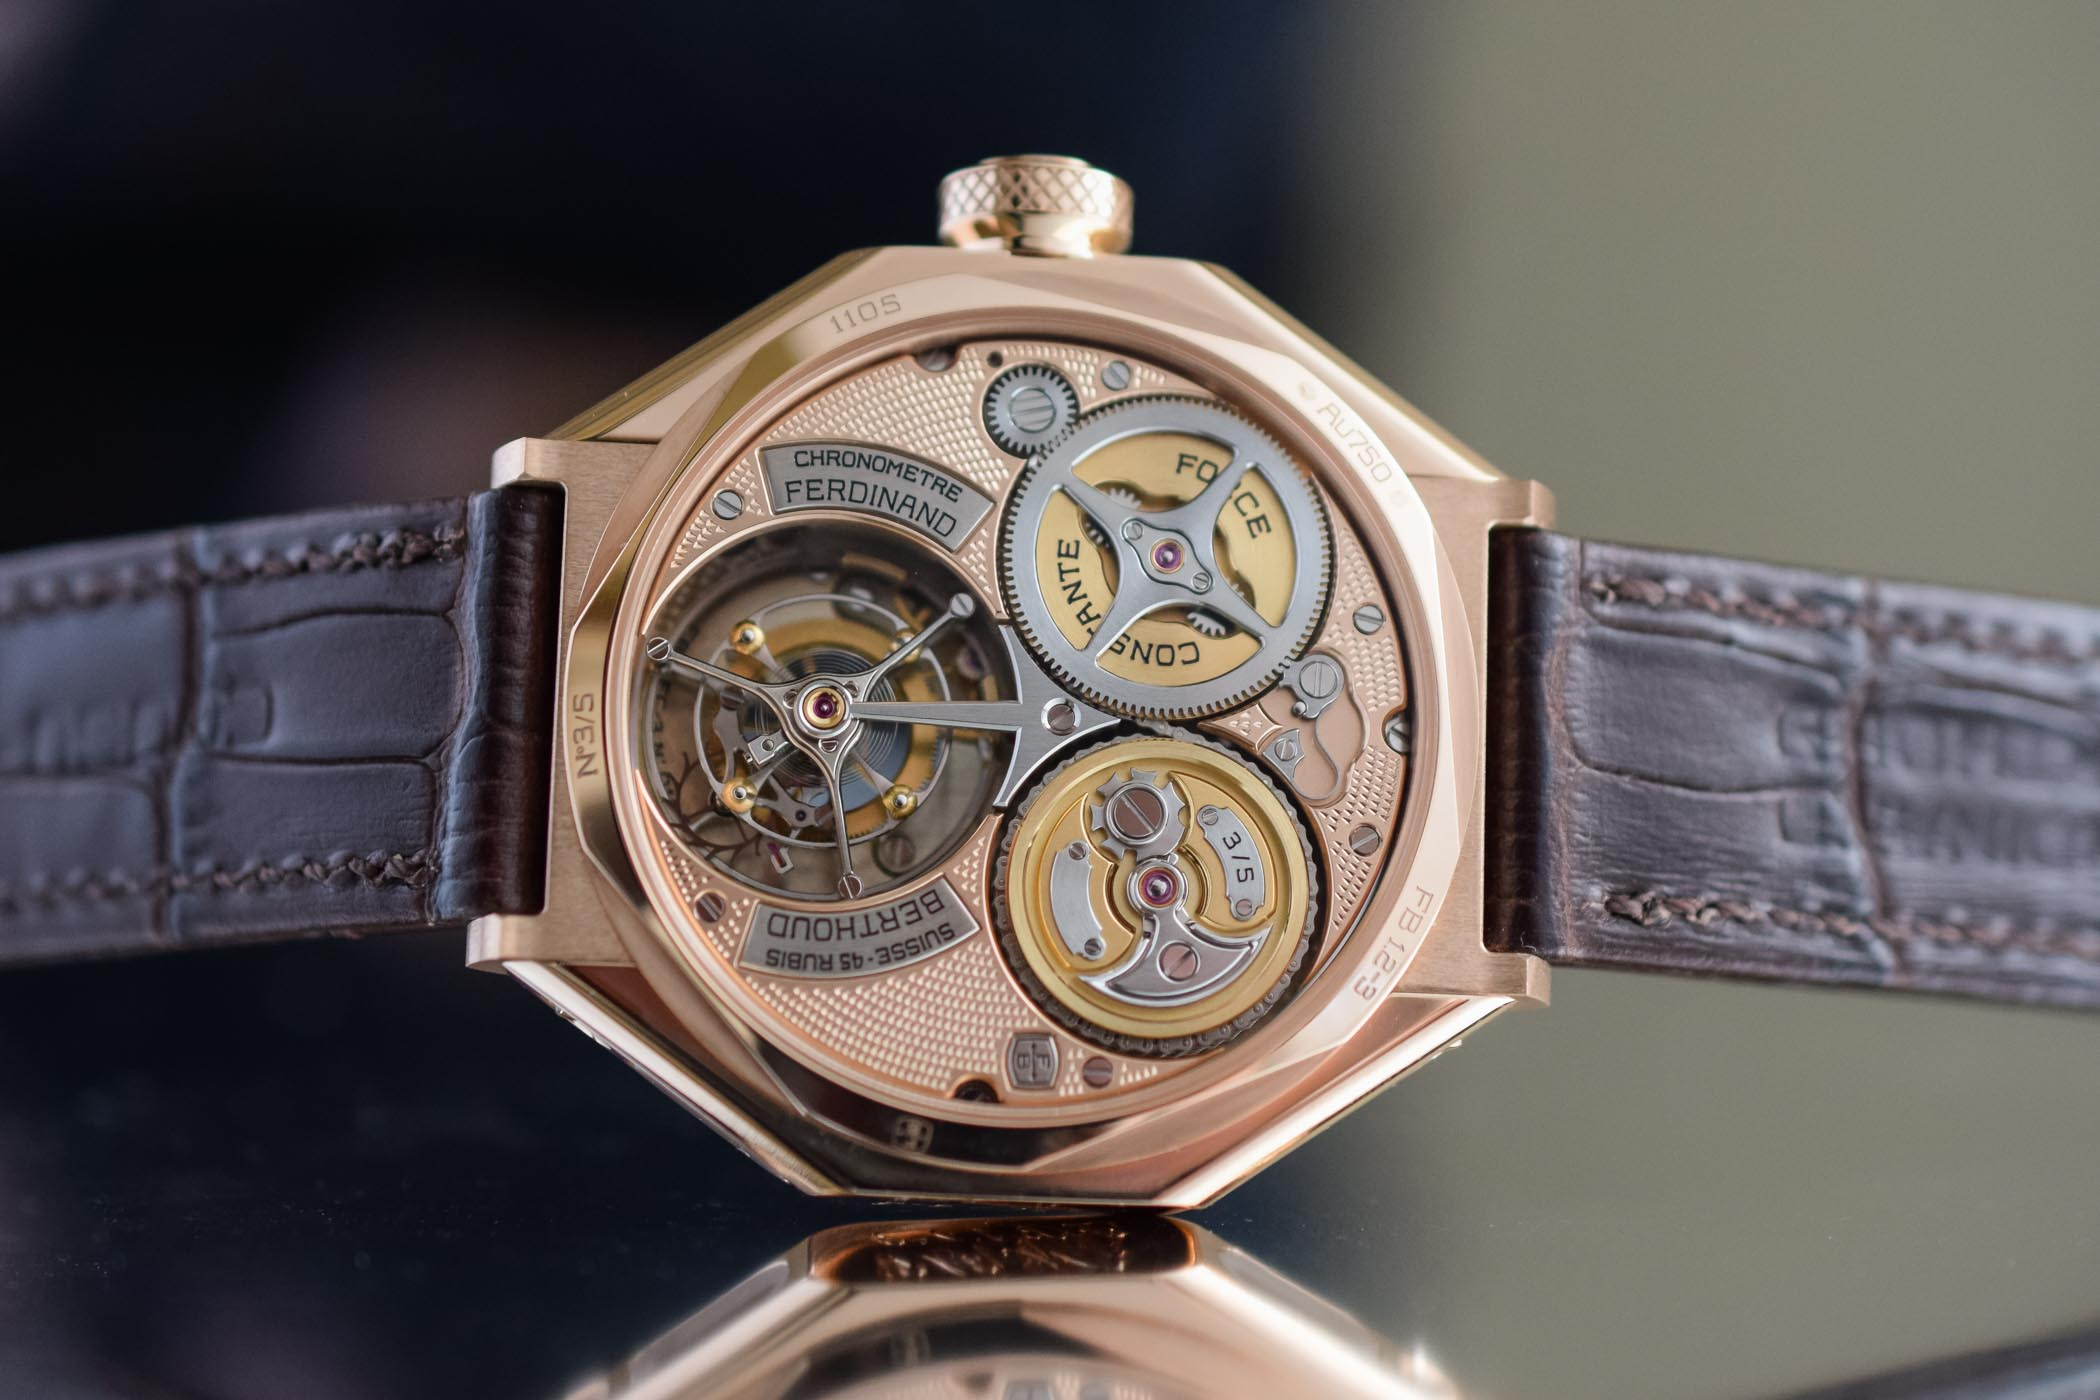 erdinand Berthoud Chronometre FB1 Oeuvre d'Or Rose Gold SIAR 2019